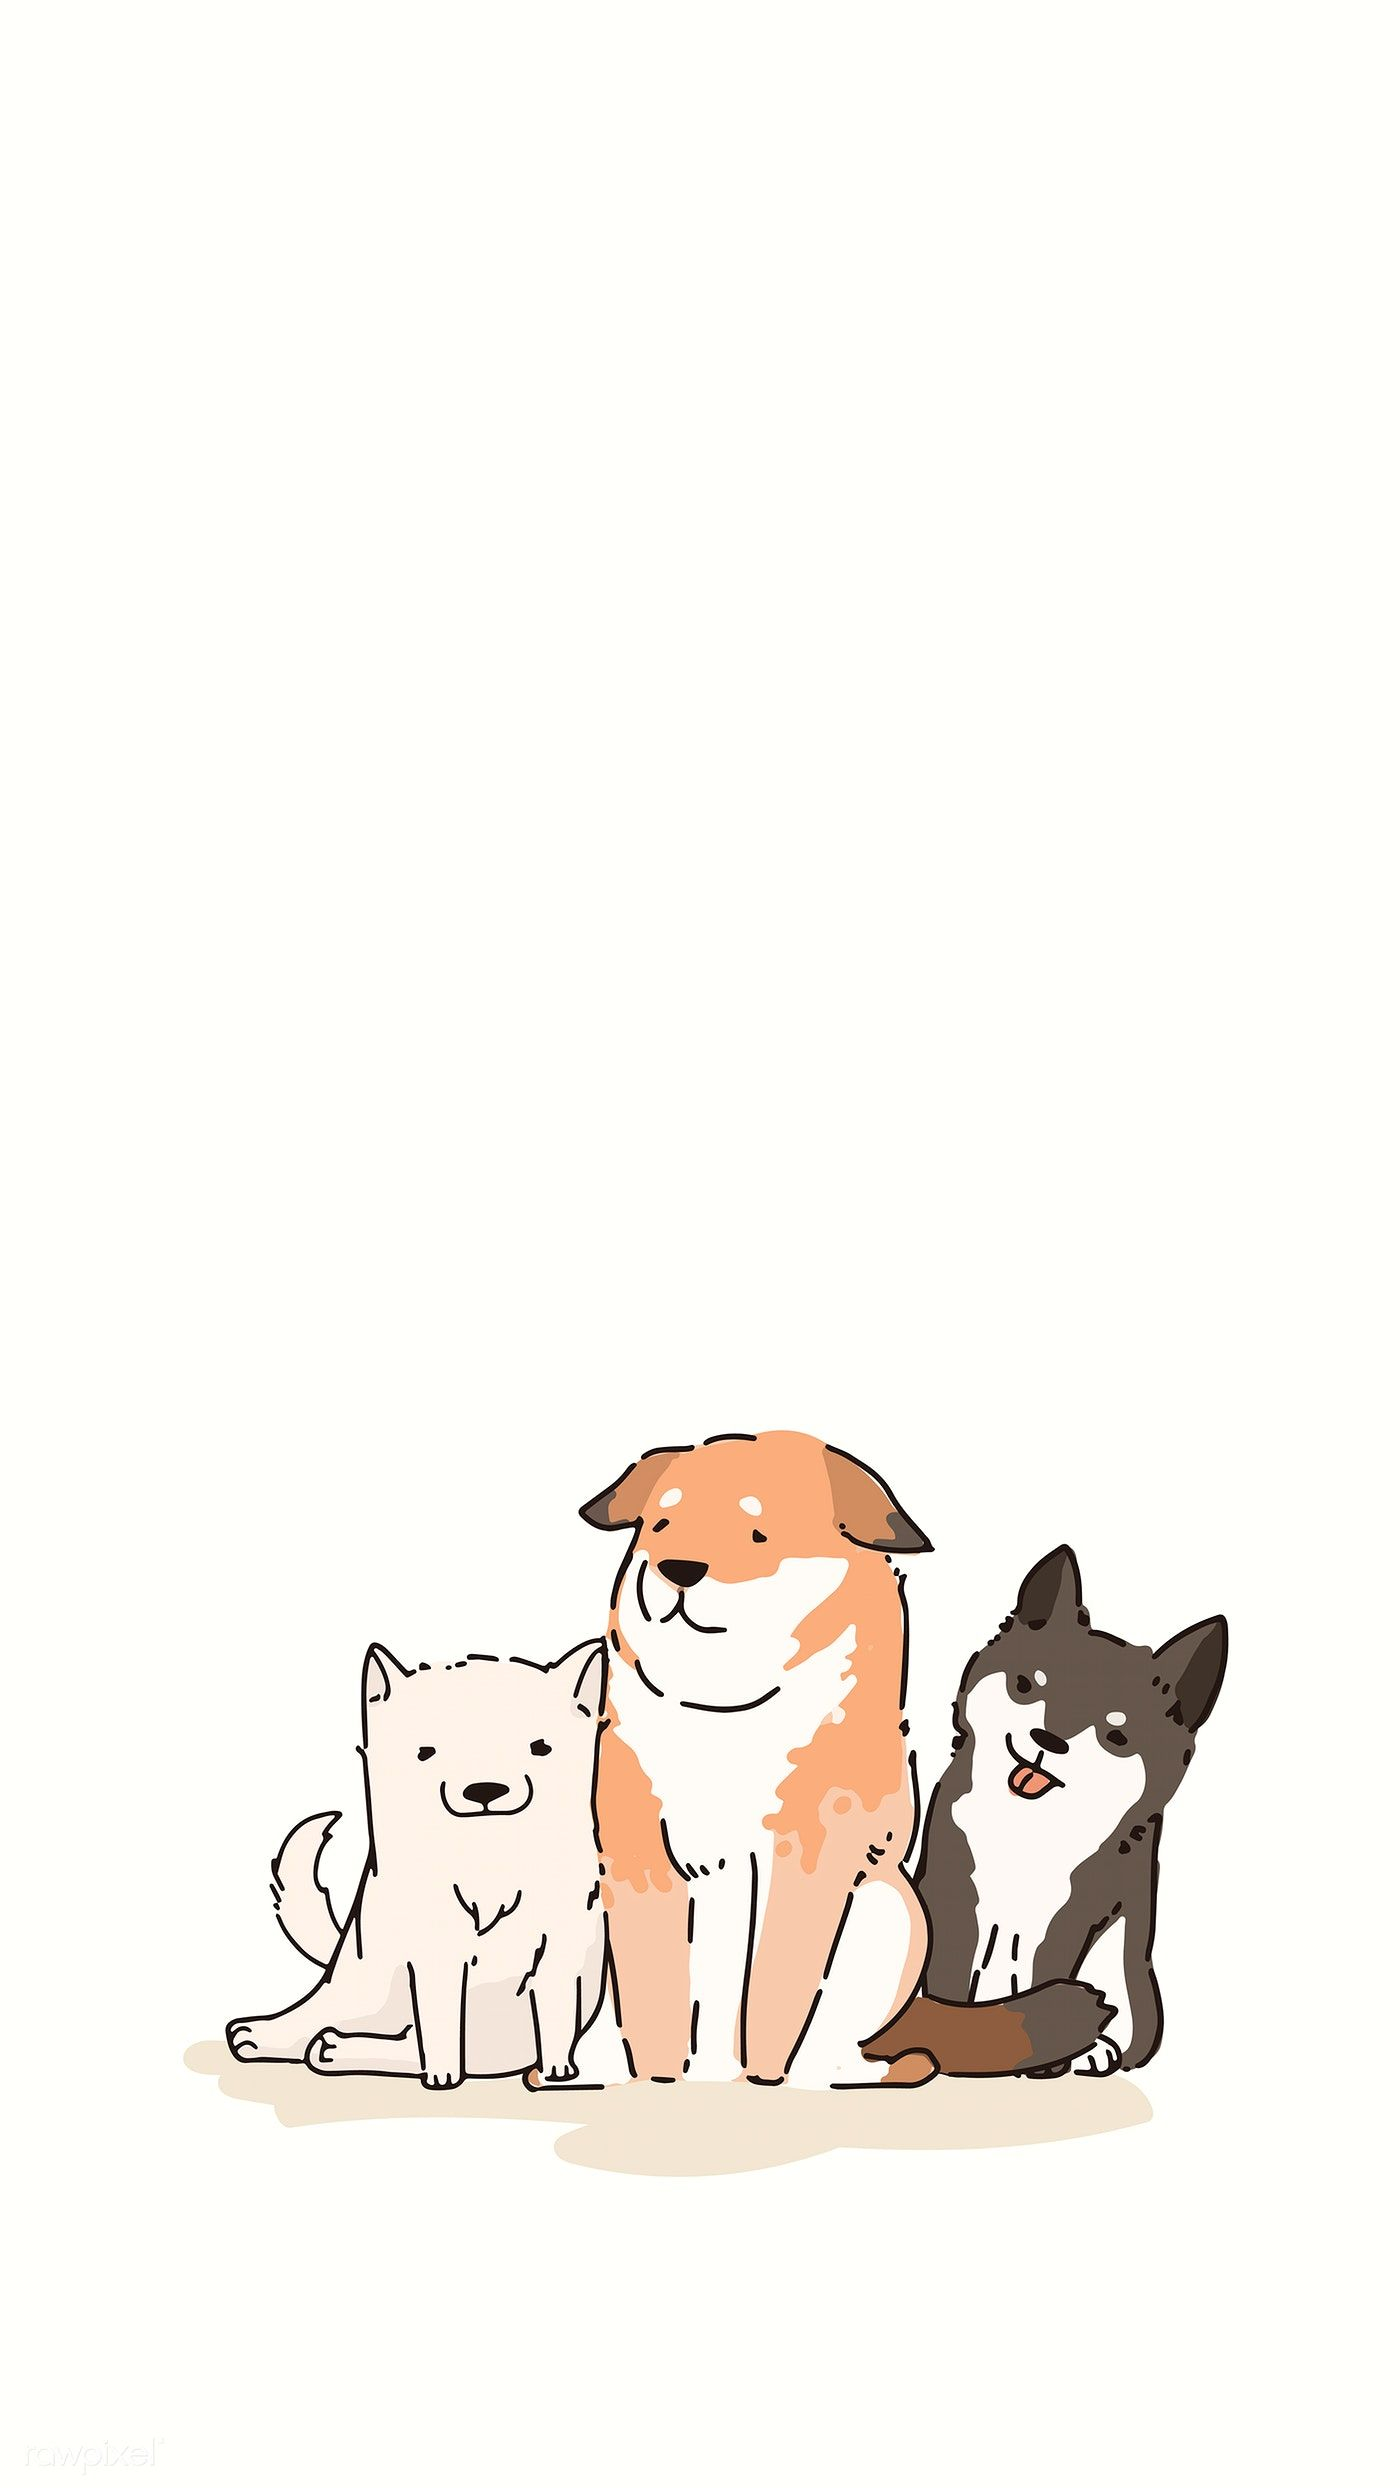 Spitz Dogs Doodle Element Vector Premium Image By Rawpixel Com Niwat Dog Wallpaper Iphone Cute Dog Wallpaper Dog Wallpaper